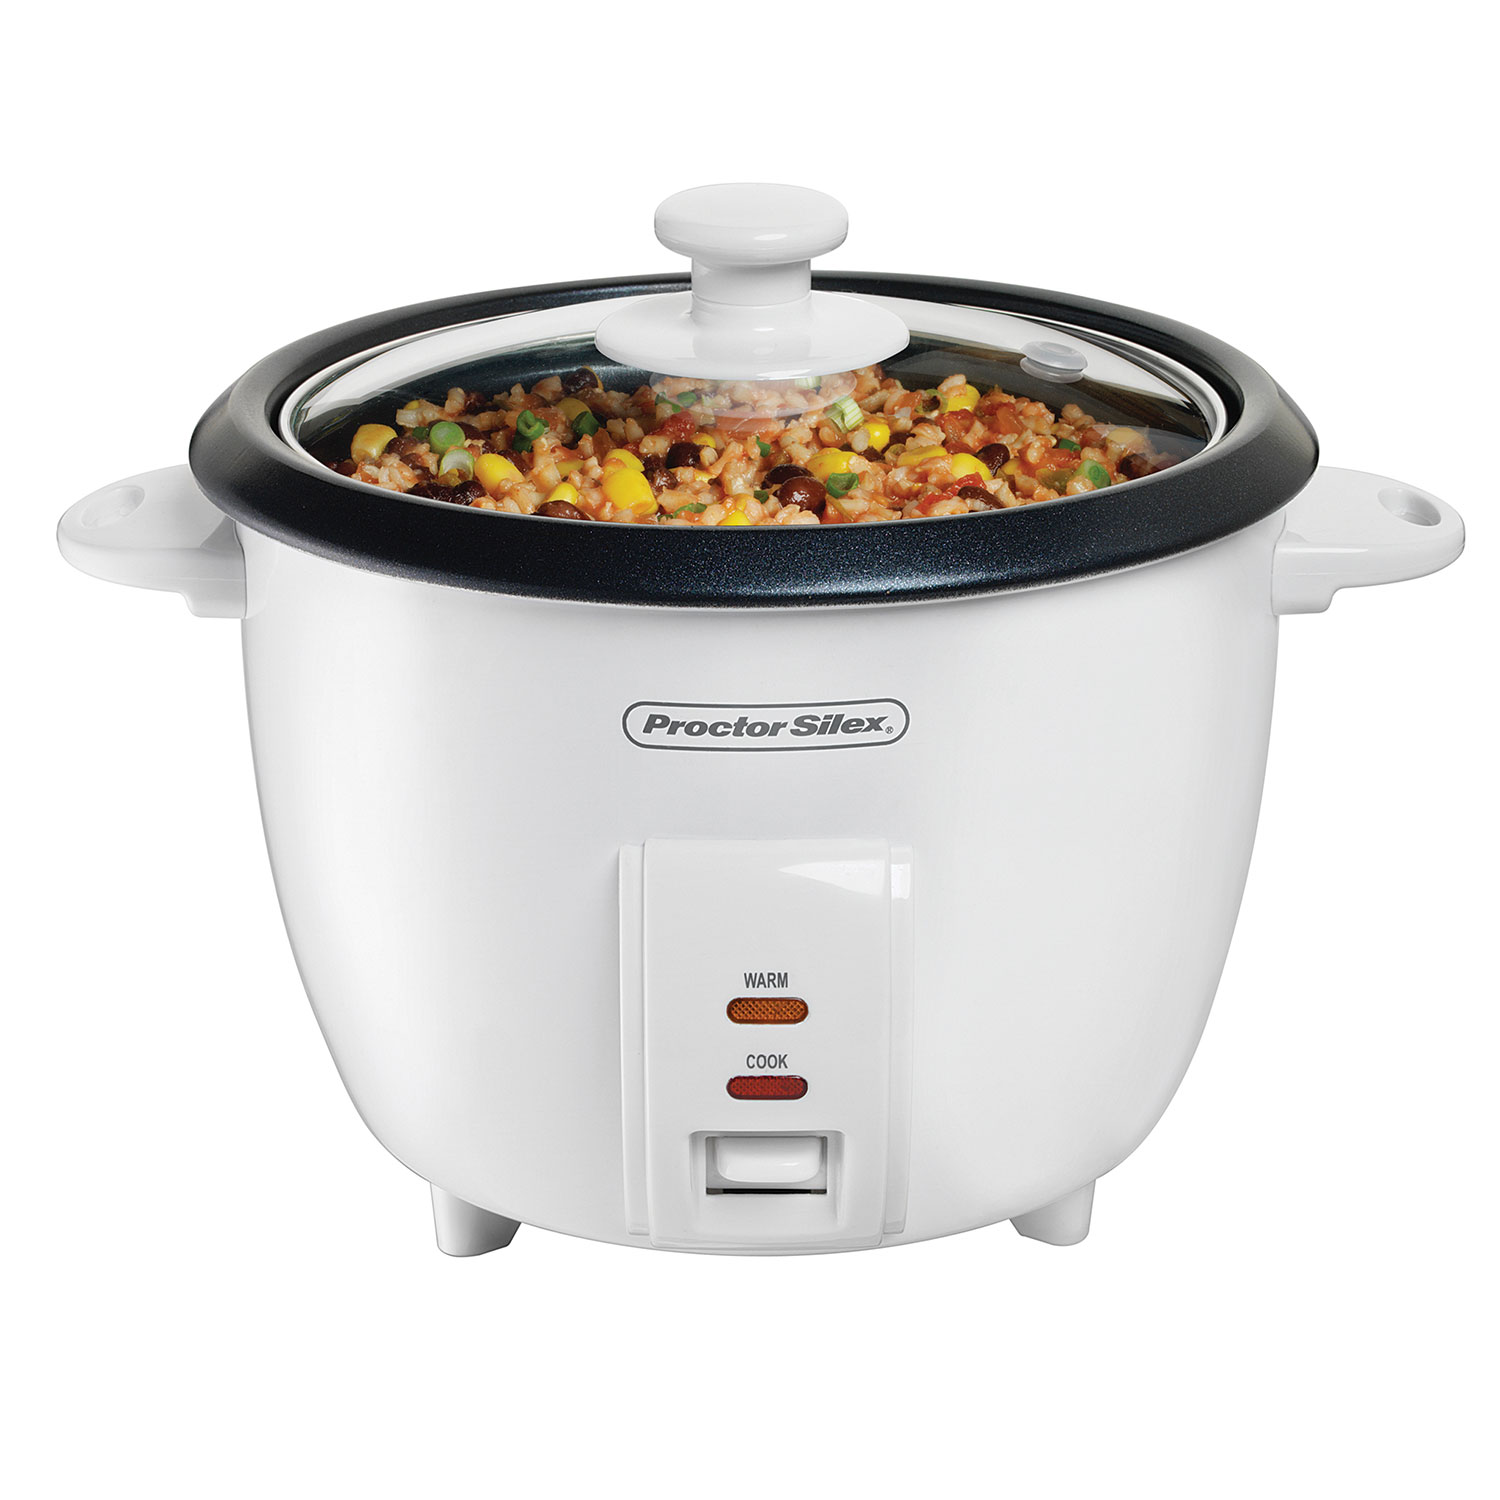 10 Cup Capacity (Cooked) Rice Cooker with Steam Basket-37533NR